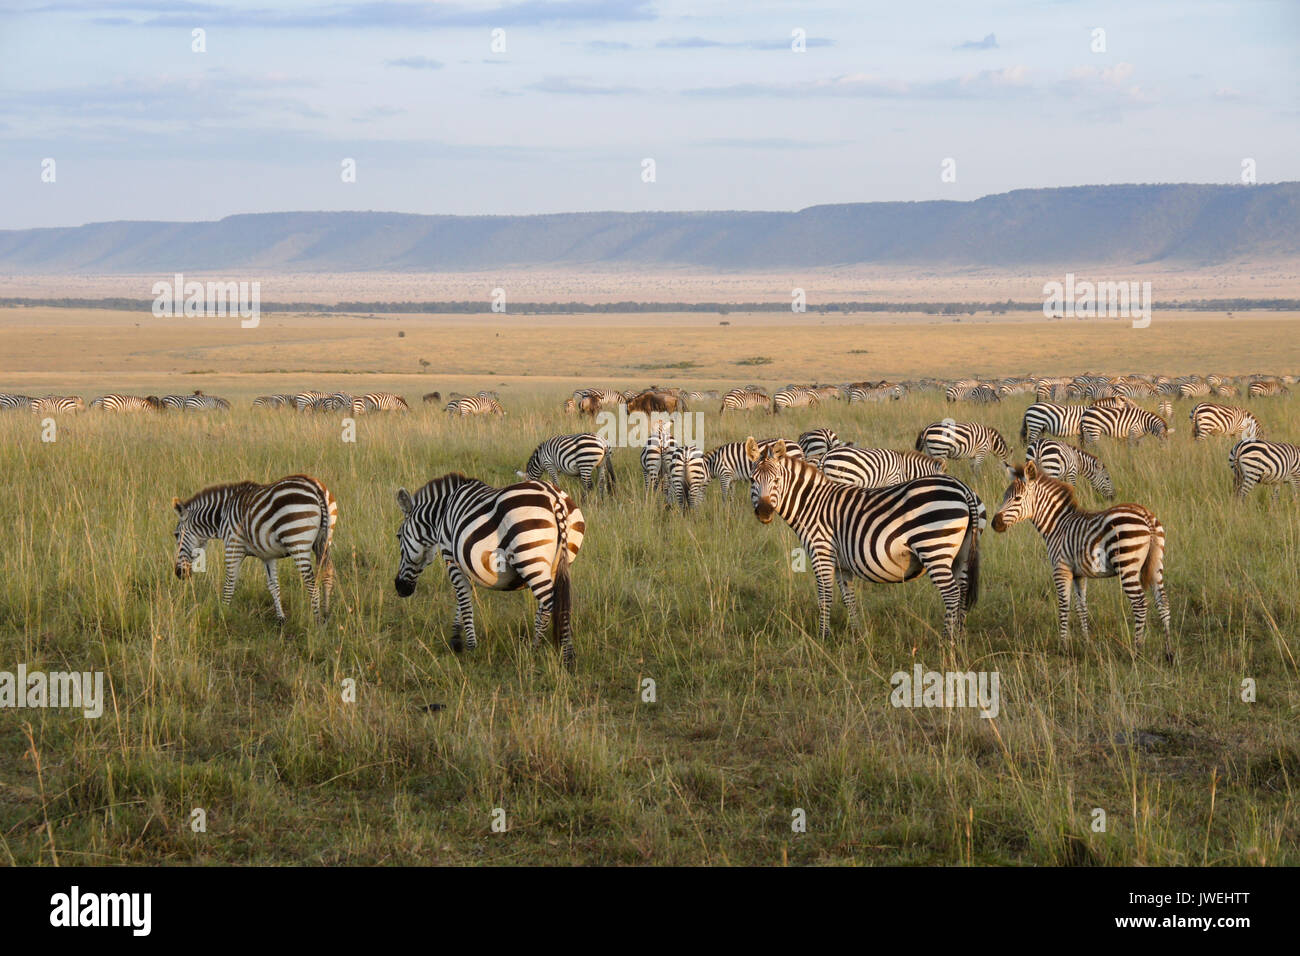 Burchell's (common or plains) zebra grazing on plain (Oloololo/Oldoinylo/Siria Escarpment in background), Masai - Stock Image